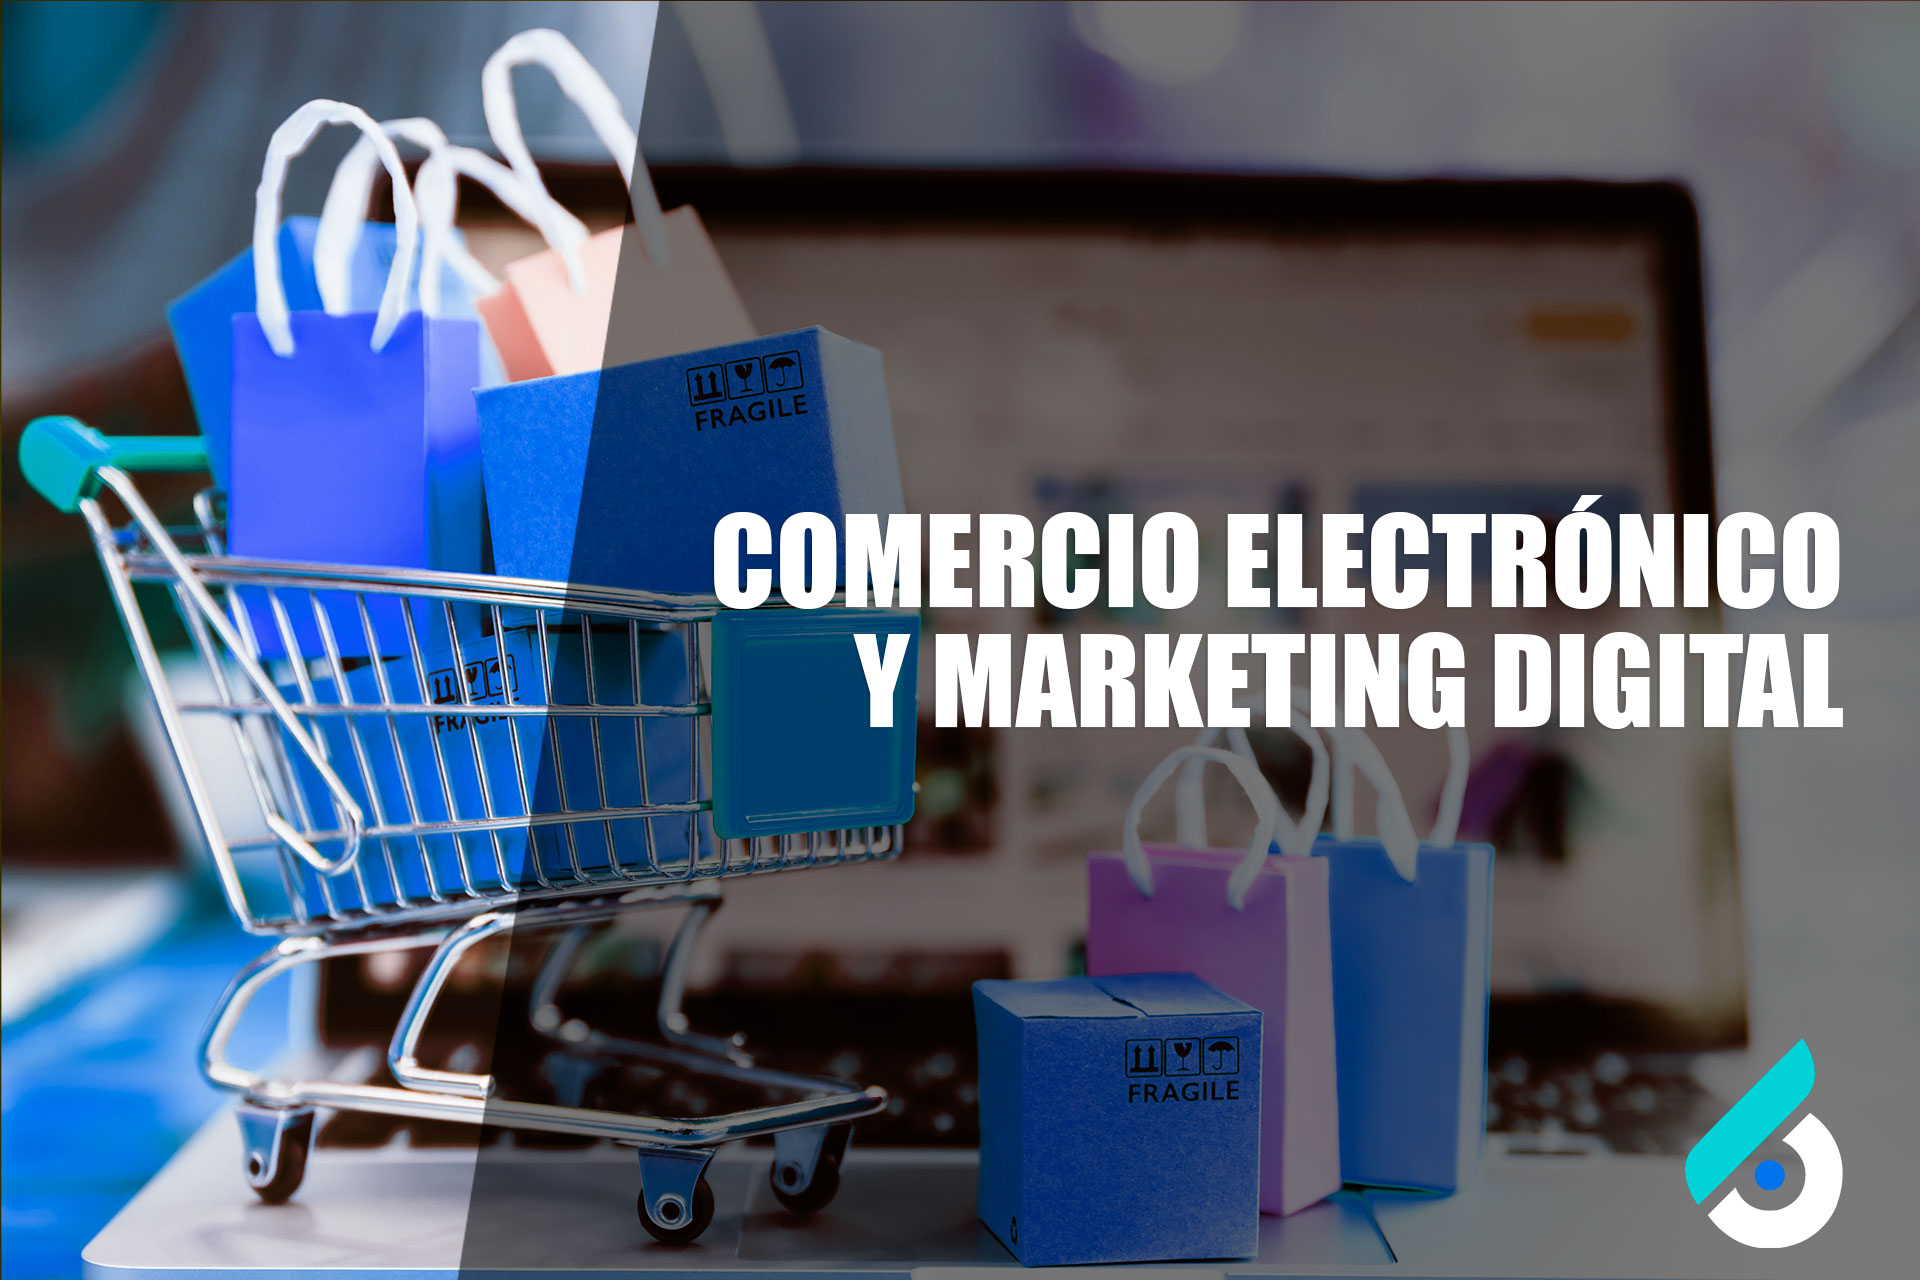 DMIPE-20-01-13-0456-1 | Comercio Electrónico y Marketing Digital